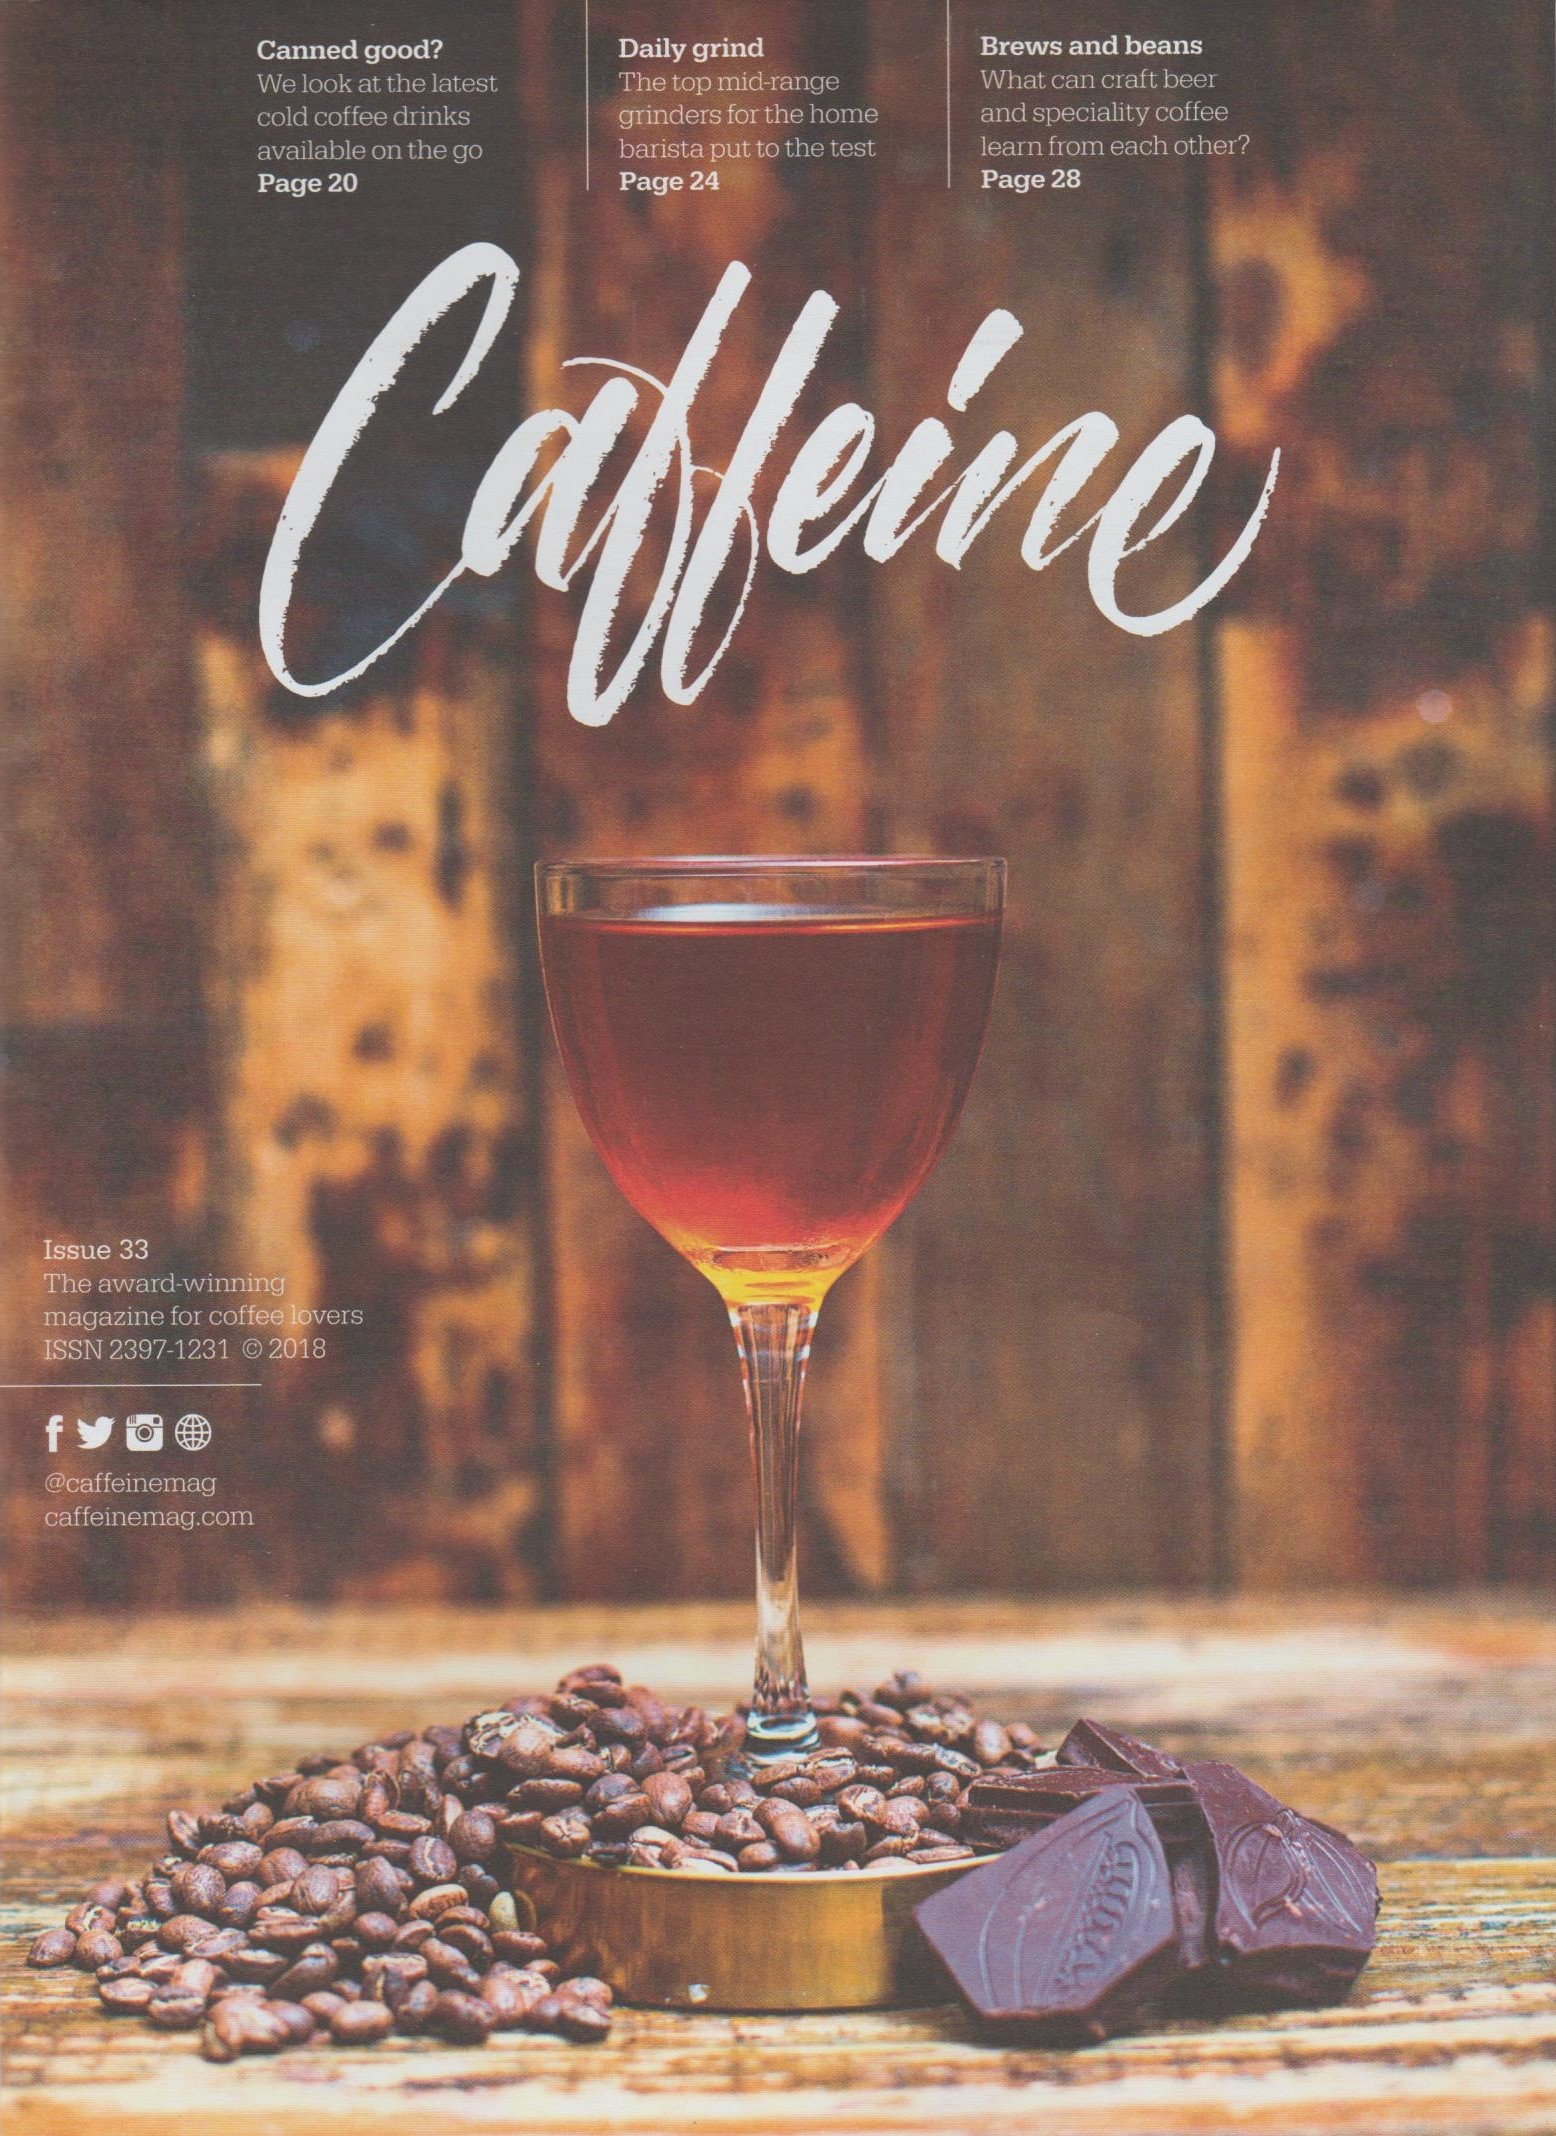 Caffeine Magazine ushers in the arrival of summer with its cover to Issue 33.